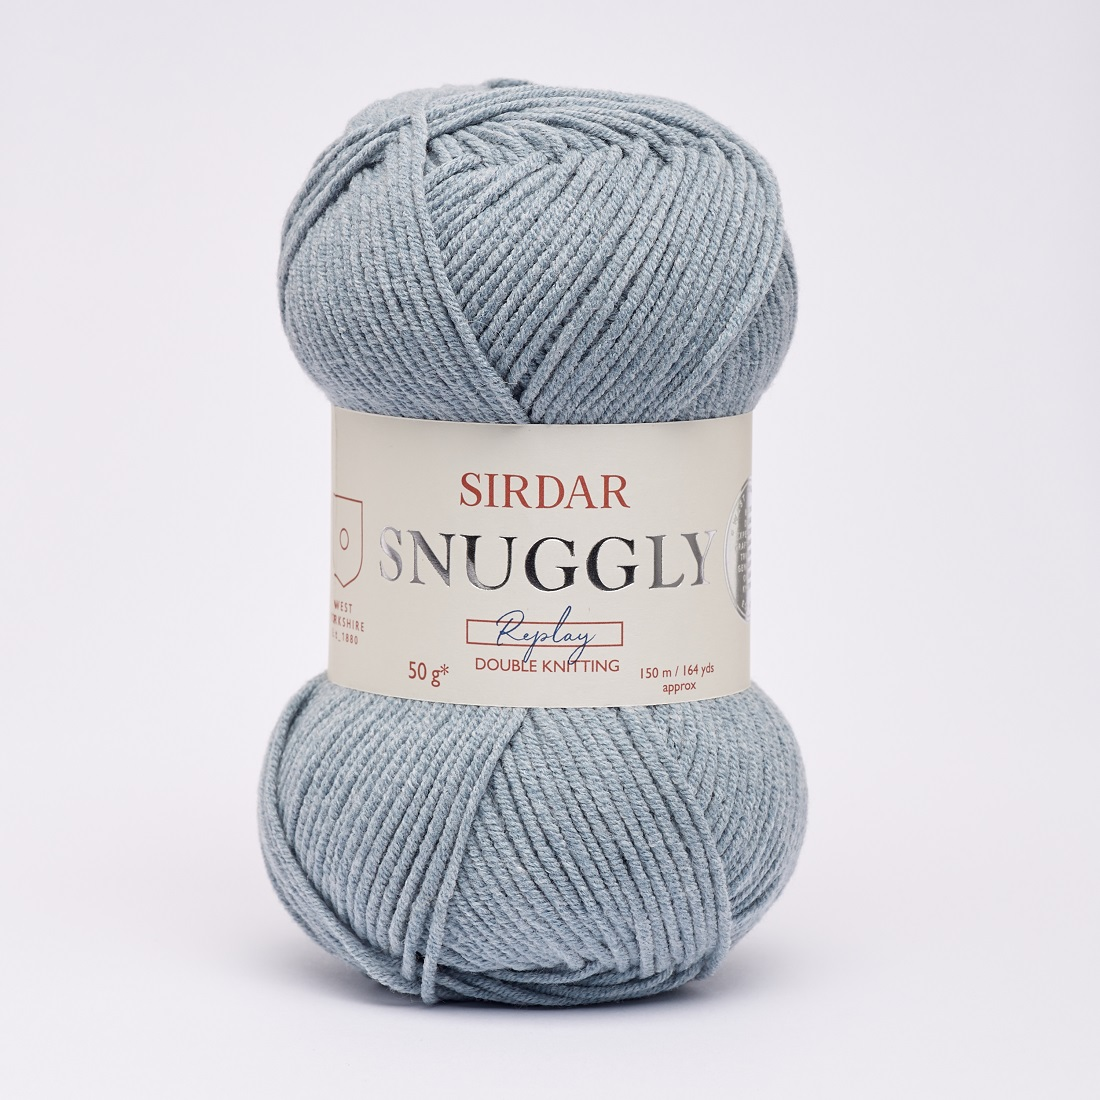 Snuggly Replay Time Out Teal 113